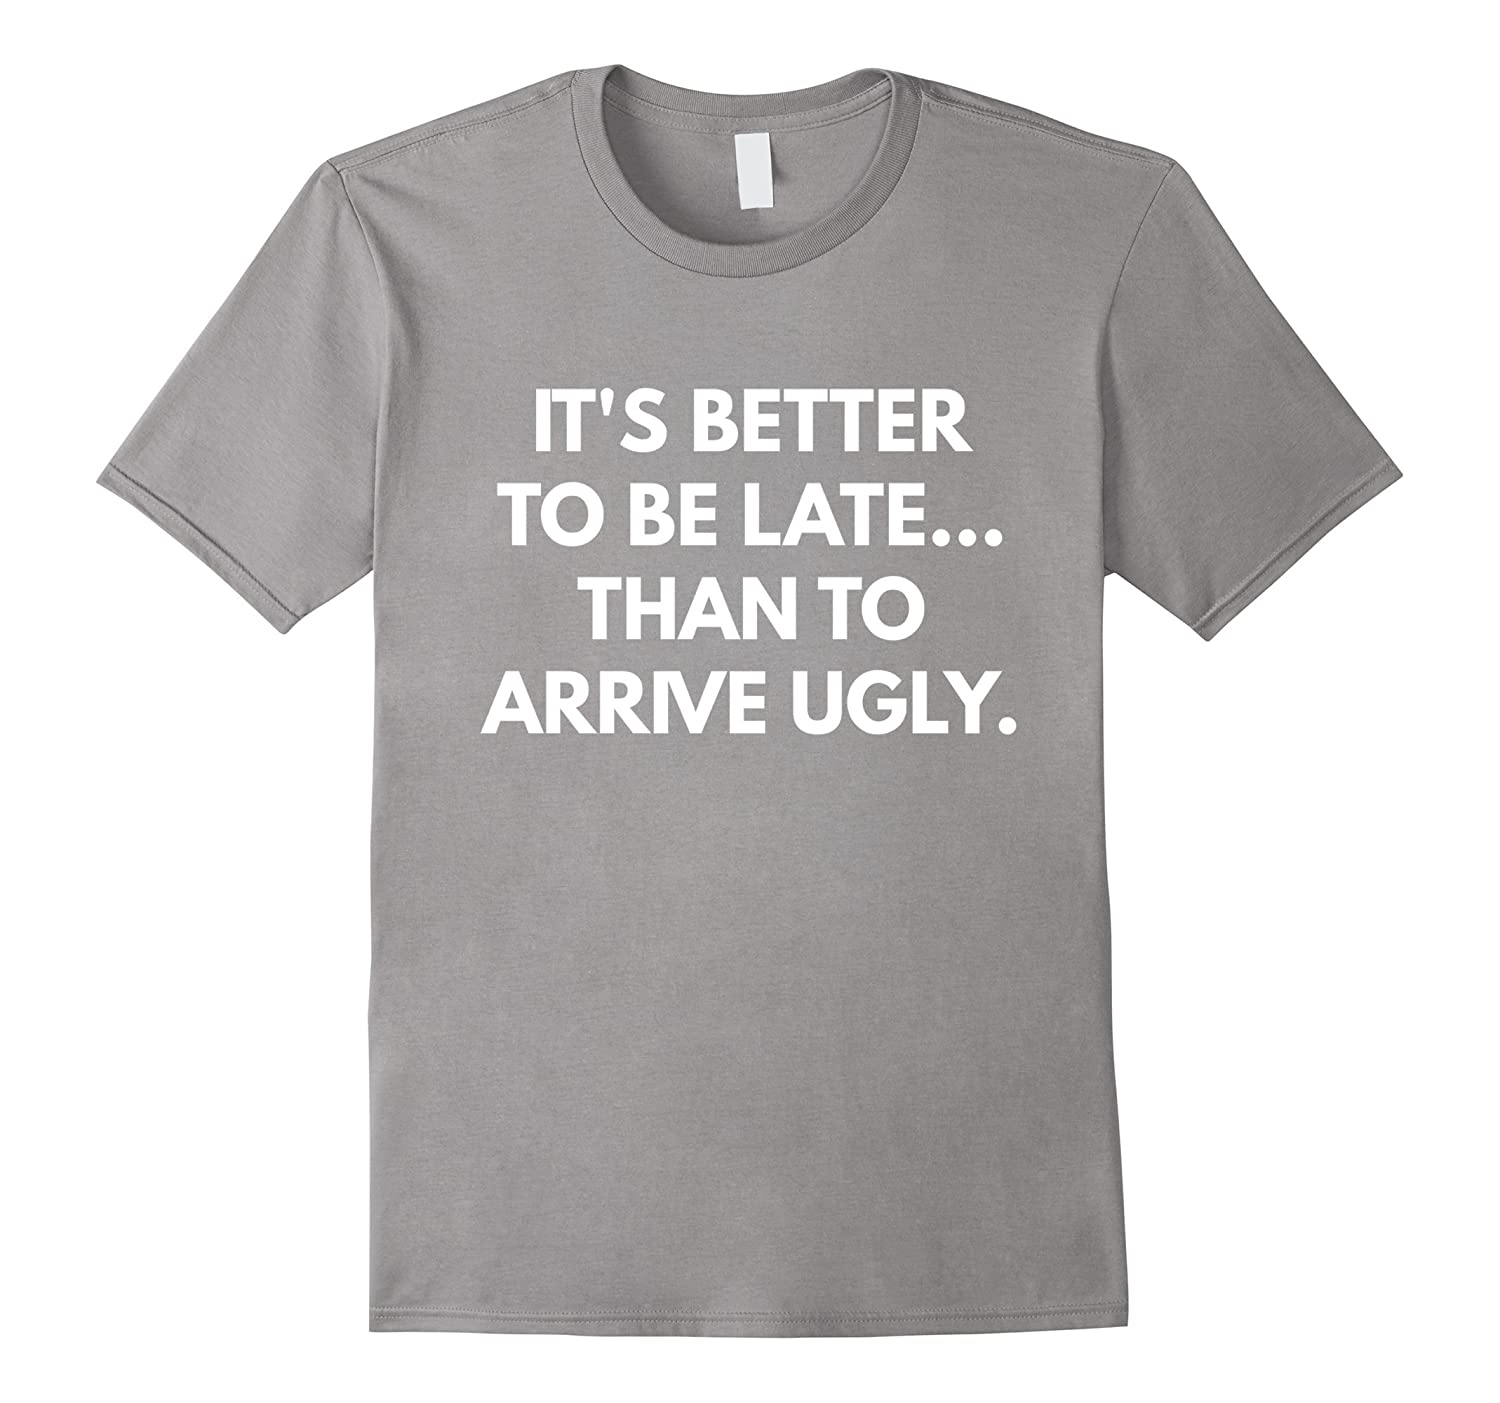 8c0c64eb6 Its Better to be Late Than to Arrive Ugly t-shirt-CD – Canditee